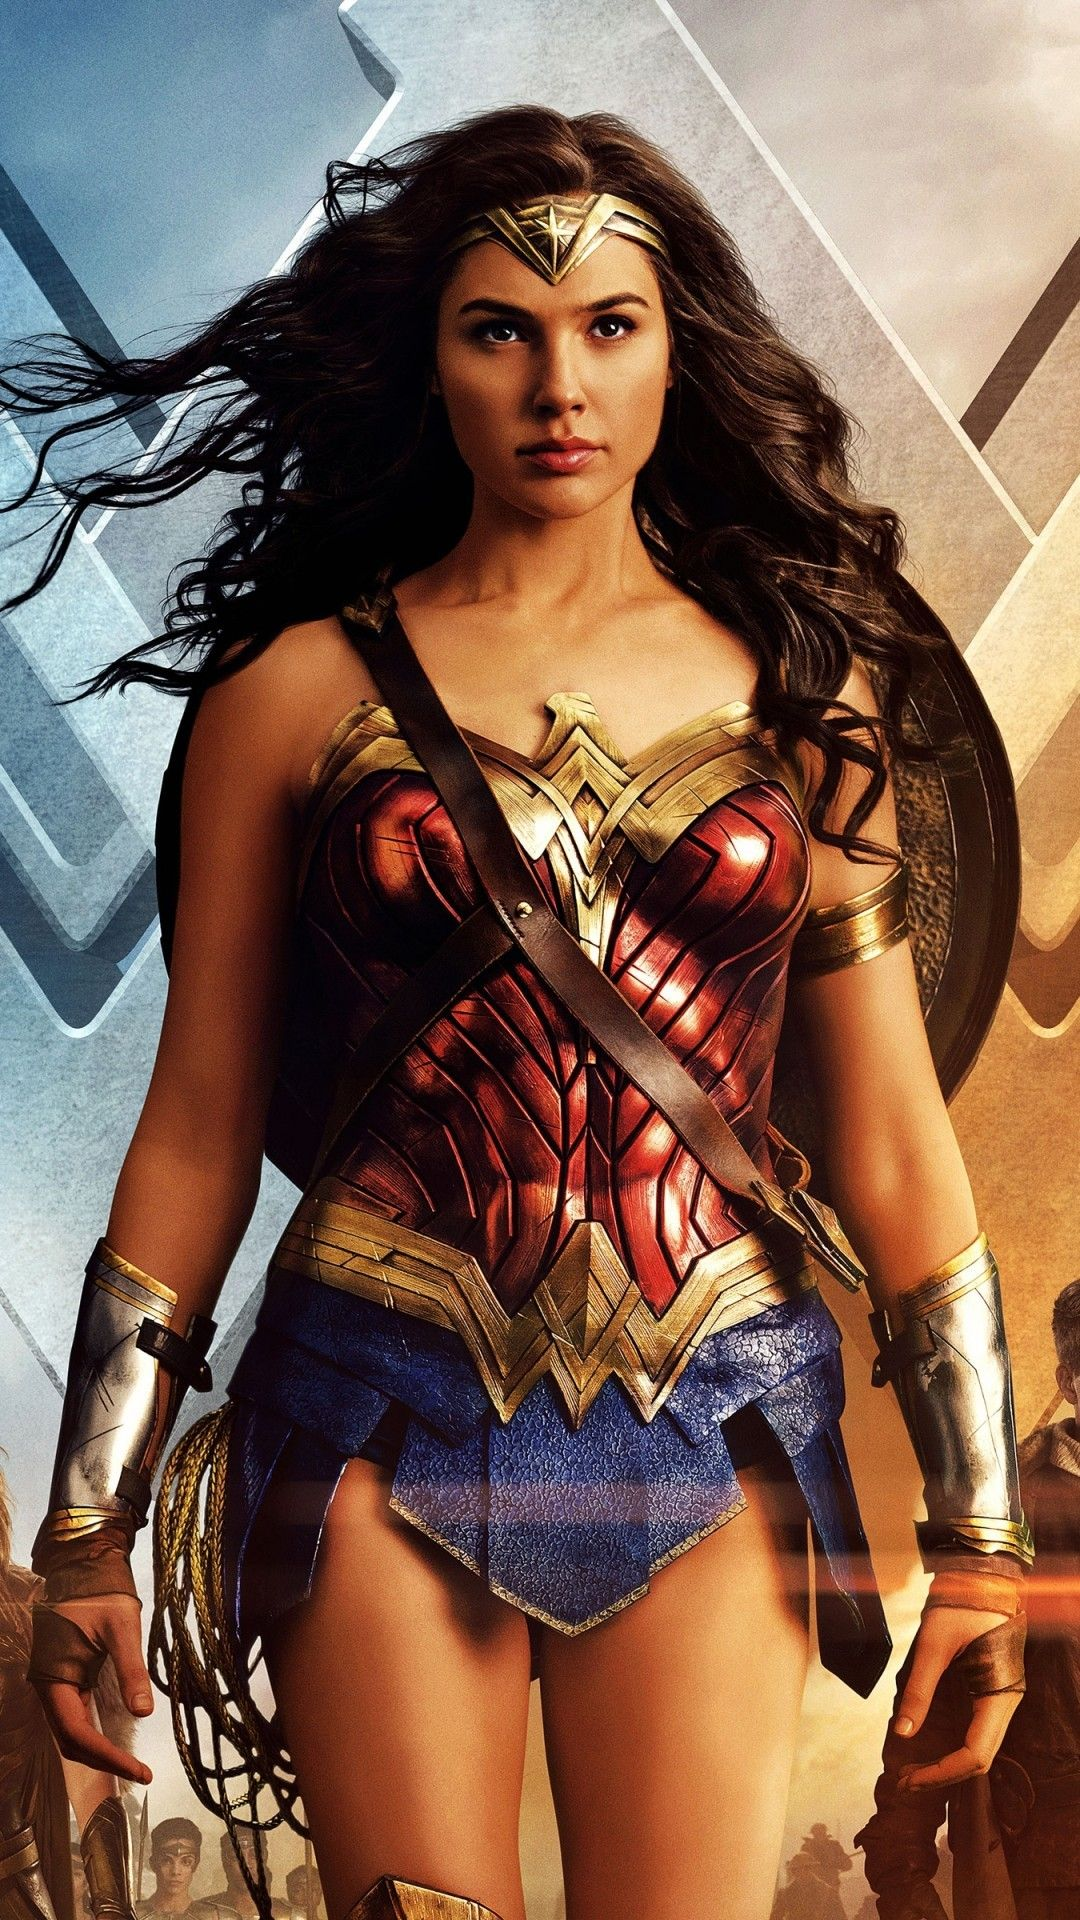 Wonder Woman Wallpaper Gal Gadot Best Iphone Wallpaper Wonder Woman Art Wonder Woman Movie Gal Gadot Wonder Woman